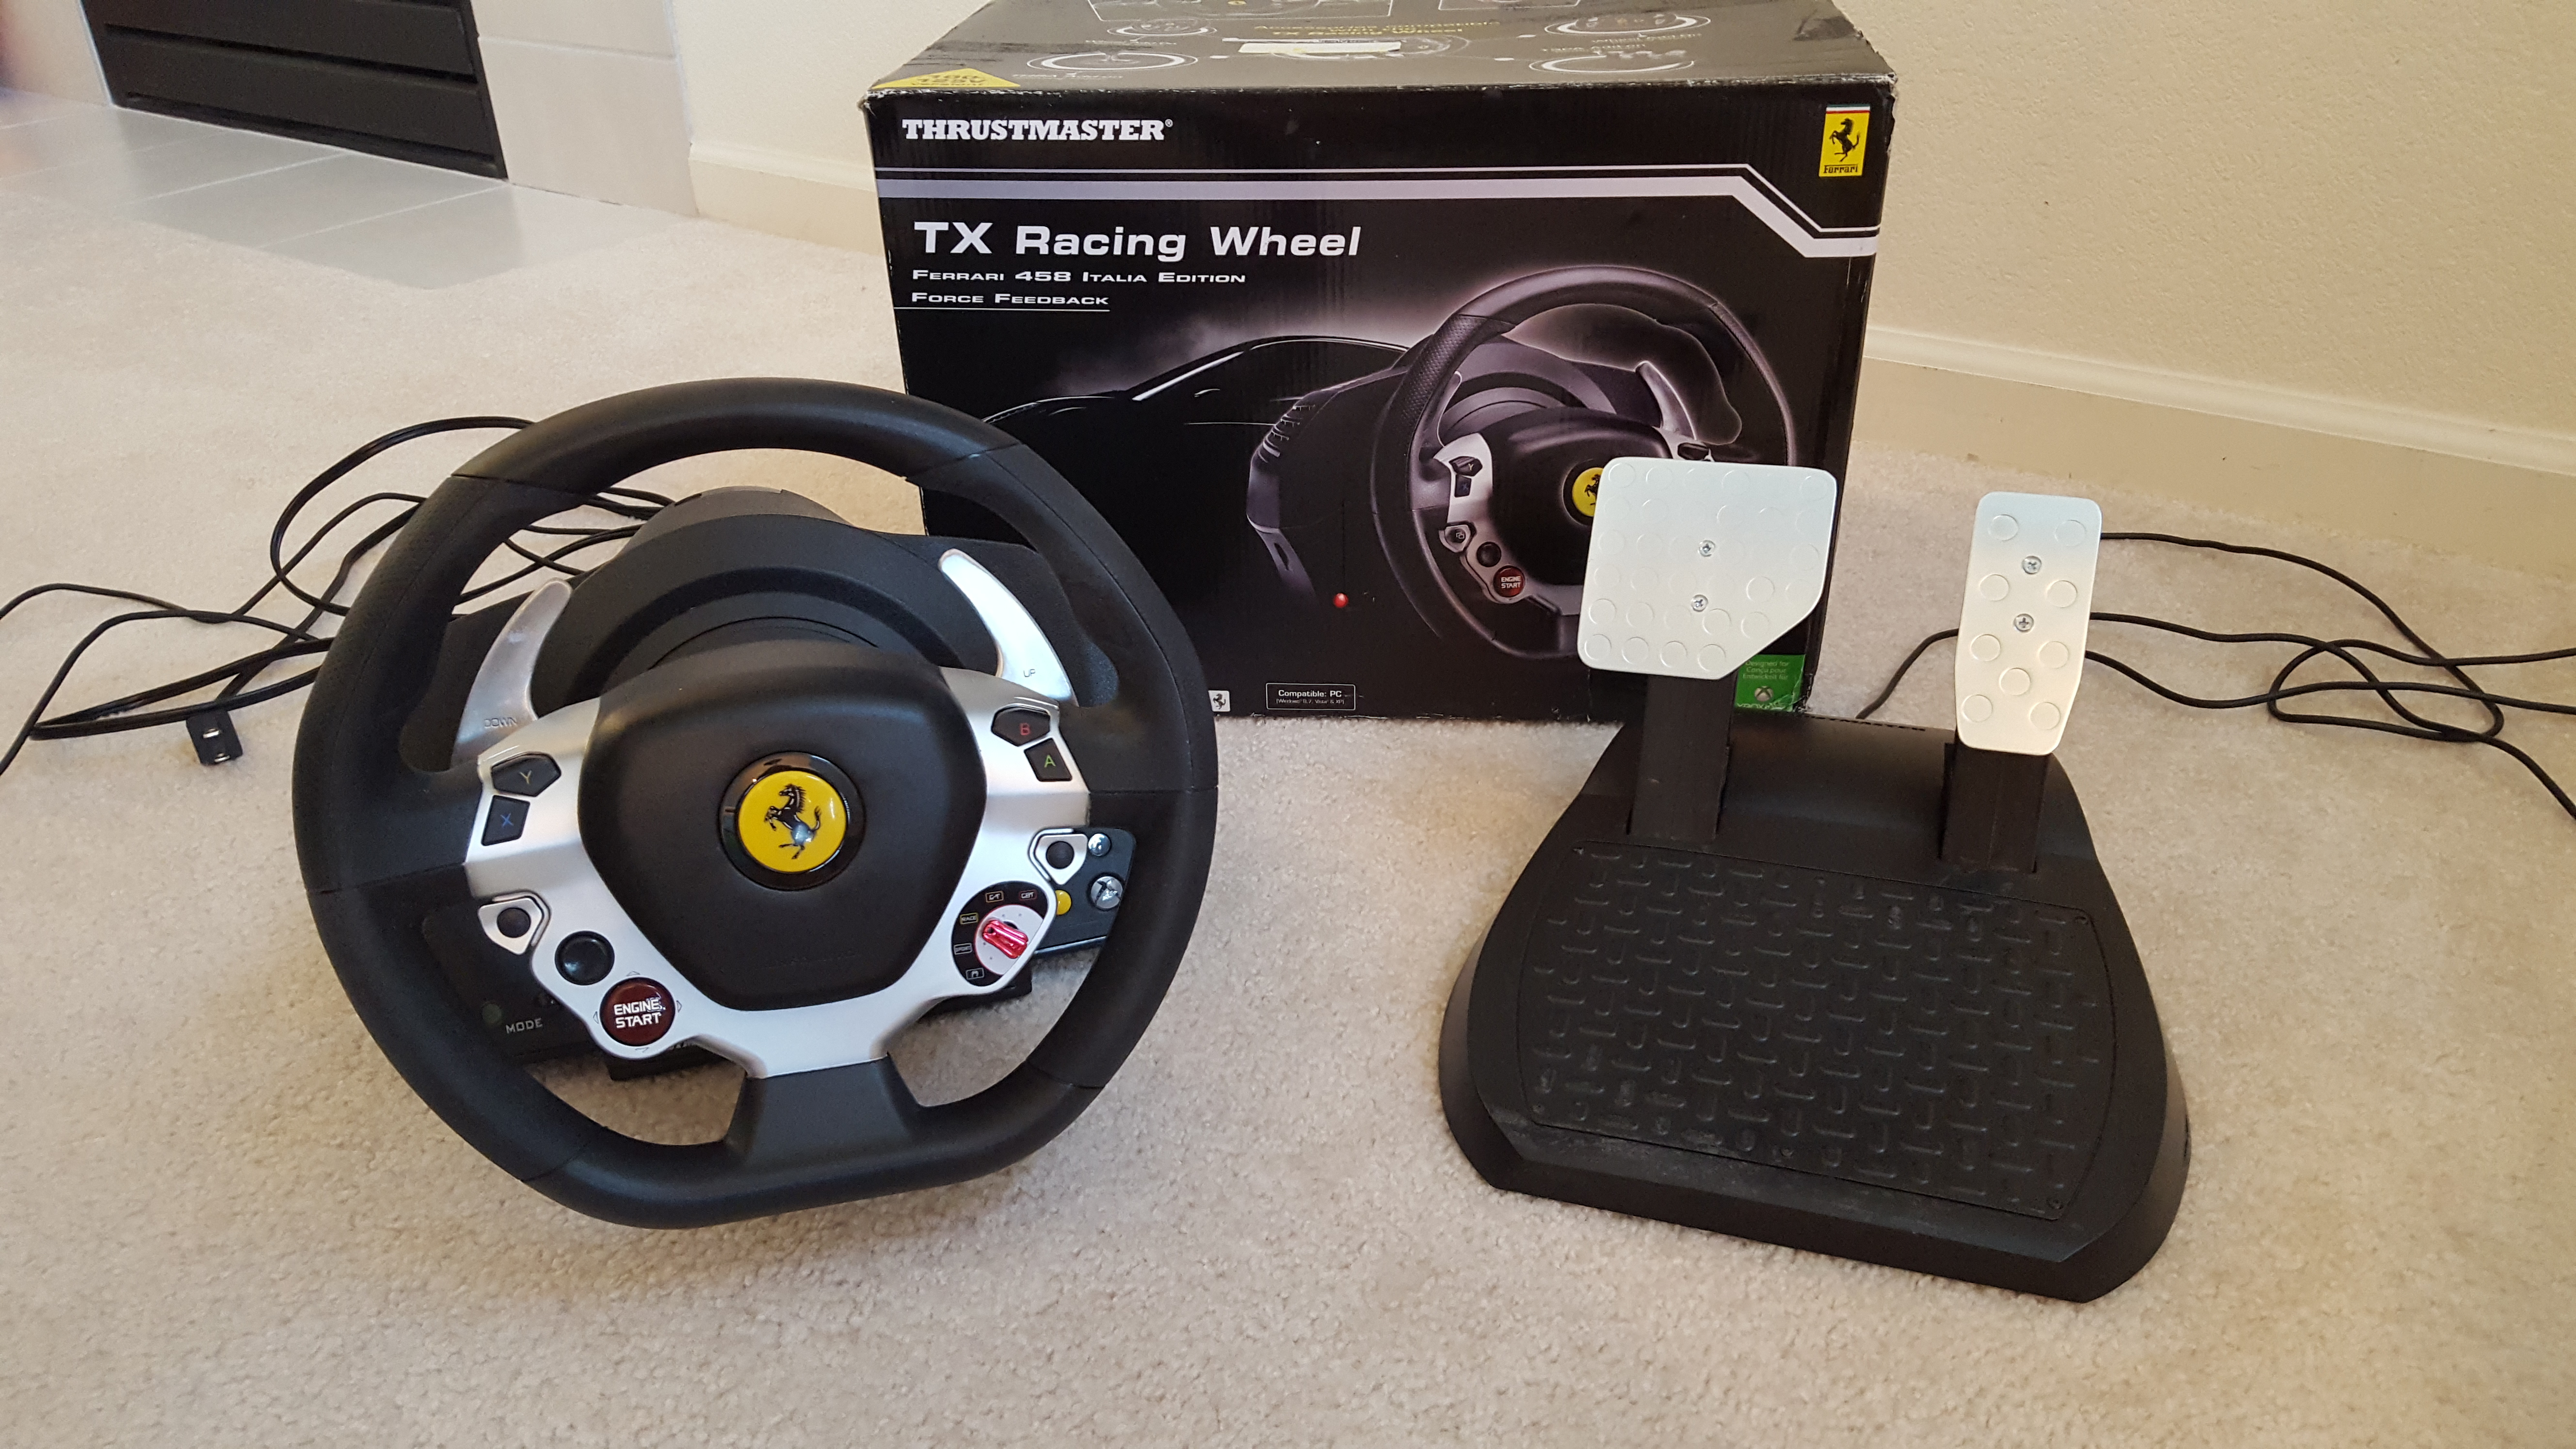 thrustmaster tx racing wheel 265 free shipping sim gear buy and sell insidesimracing forums. Black Bedroom Furniture Sets. Home Design Ideas